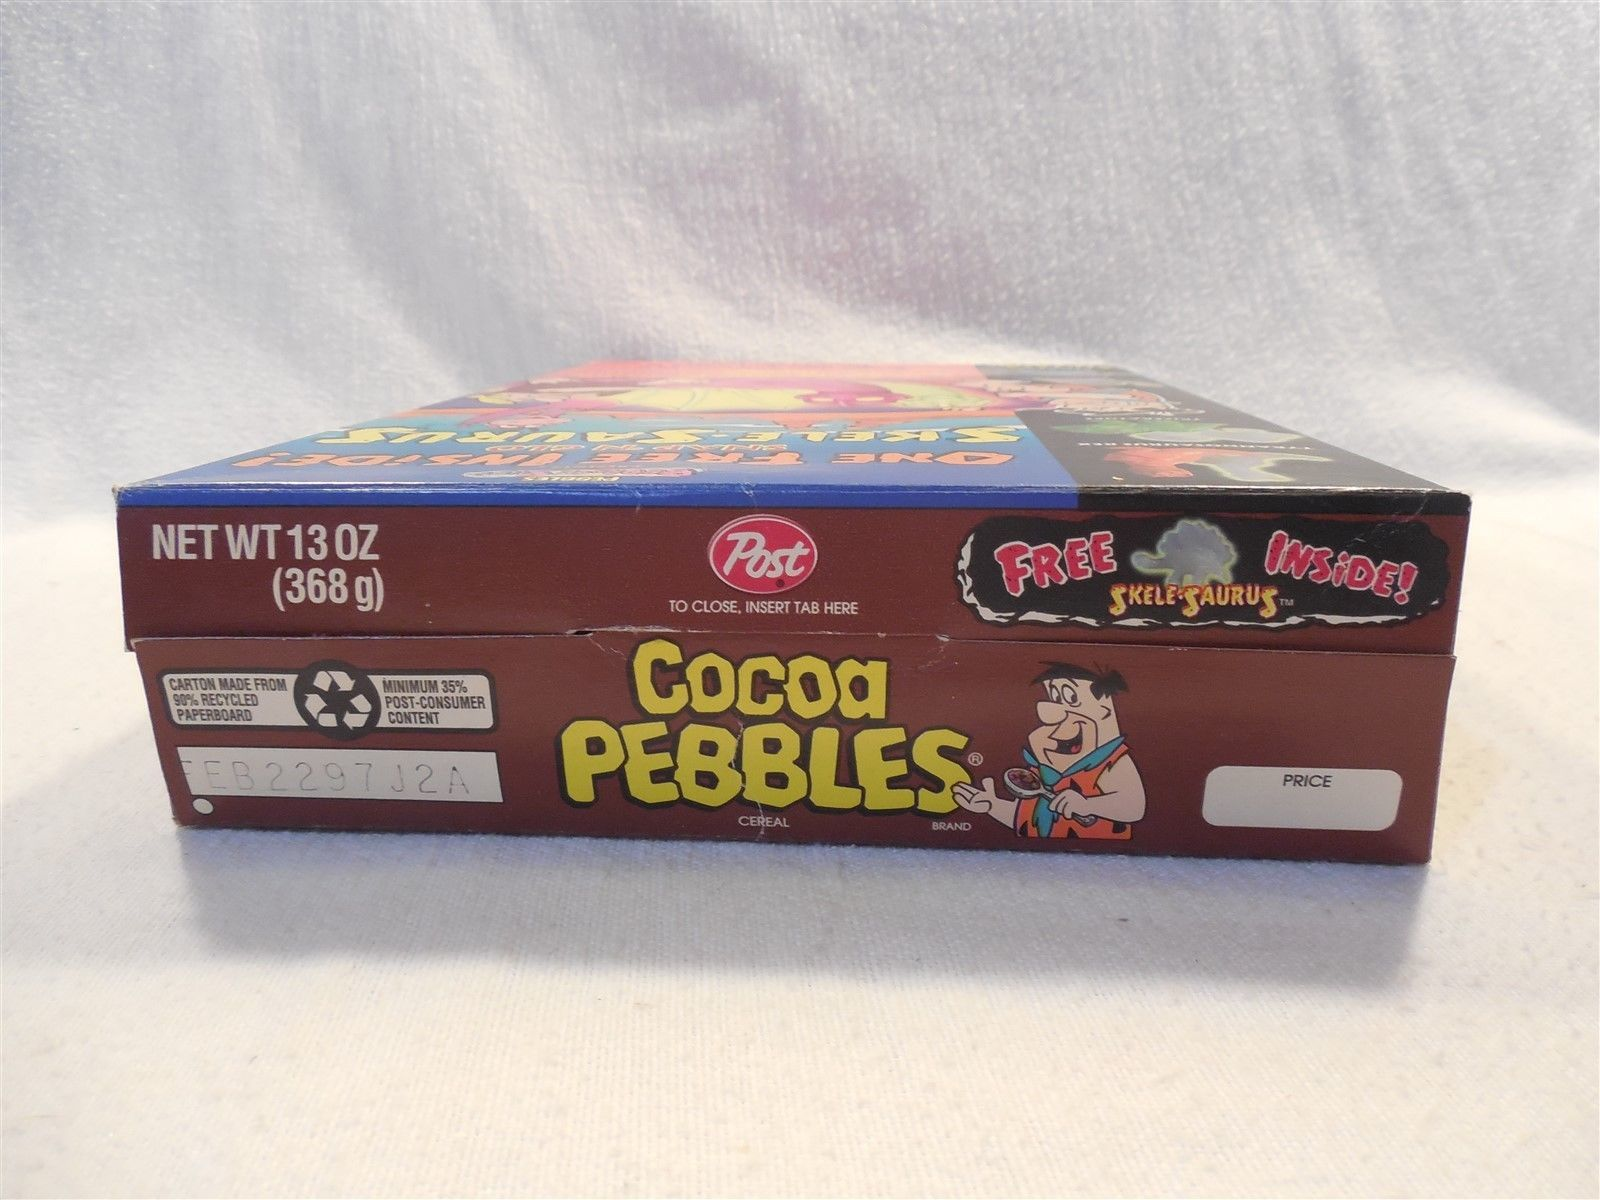 Flintstones 1996 Post Cocoa Pebbles Cereal Box Skele-Saurus Dinosaur Premium